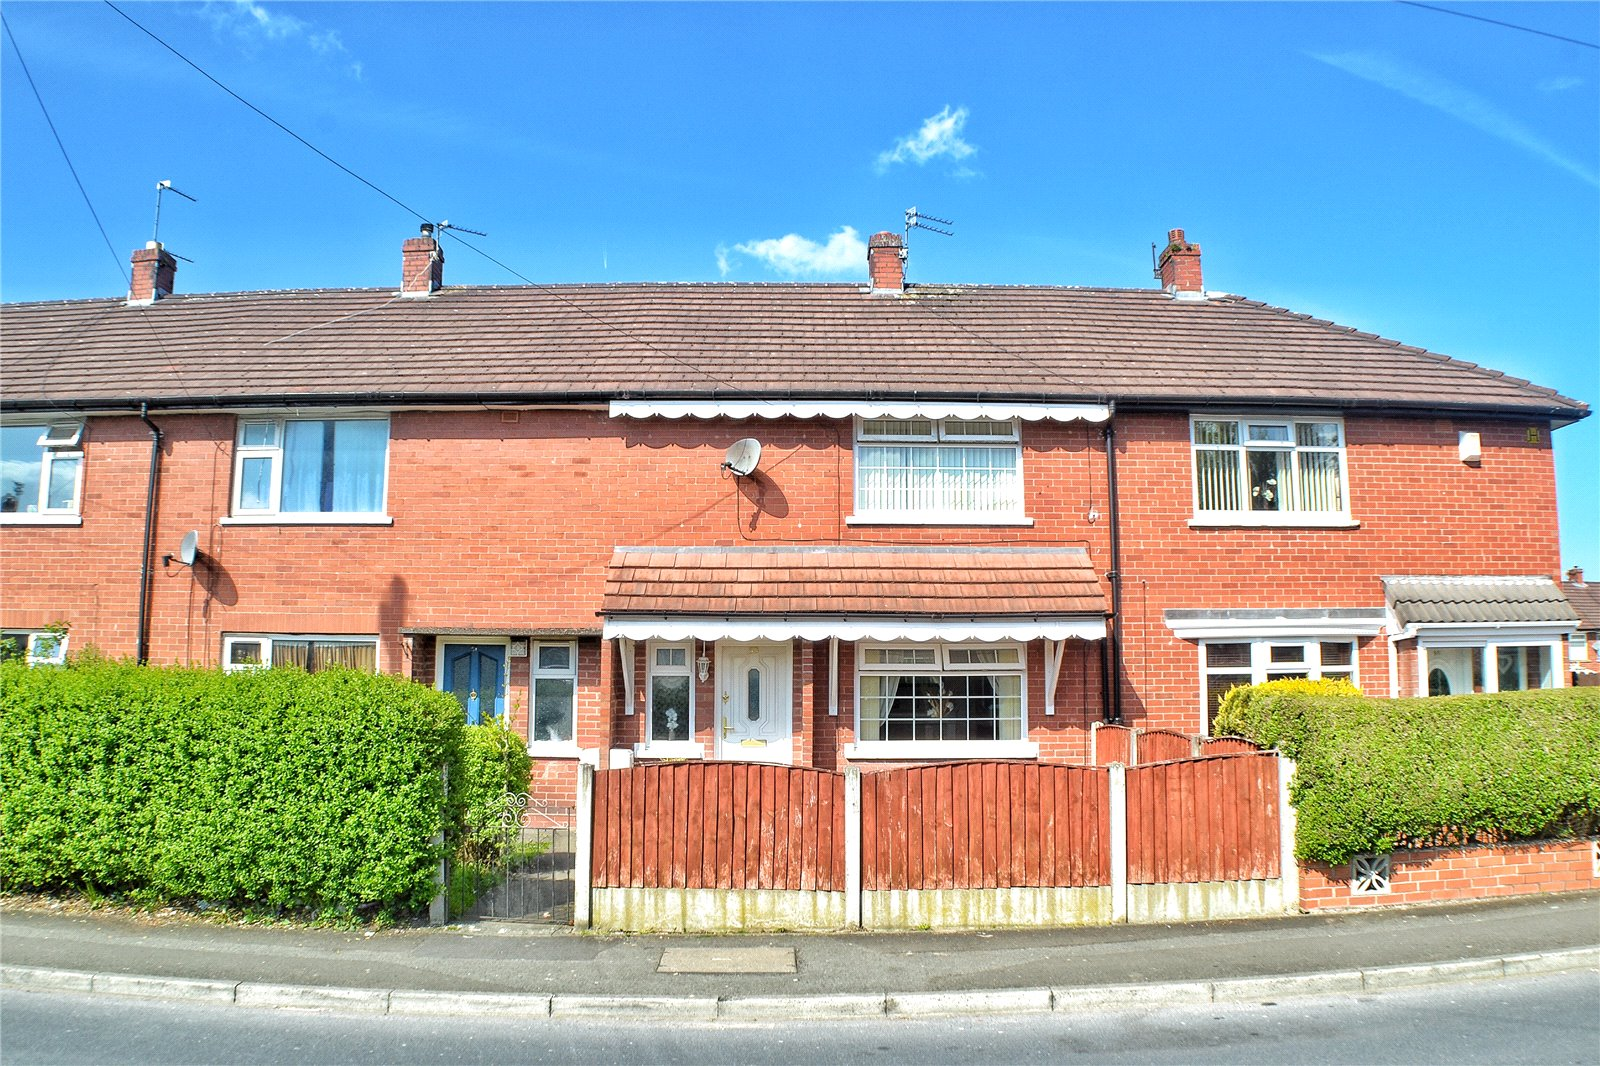 2 Bedrooms Terraced House for sale in Crowhill Road, Ashton-under-Lyne, Greater Manchester, OL7